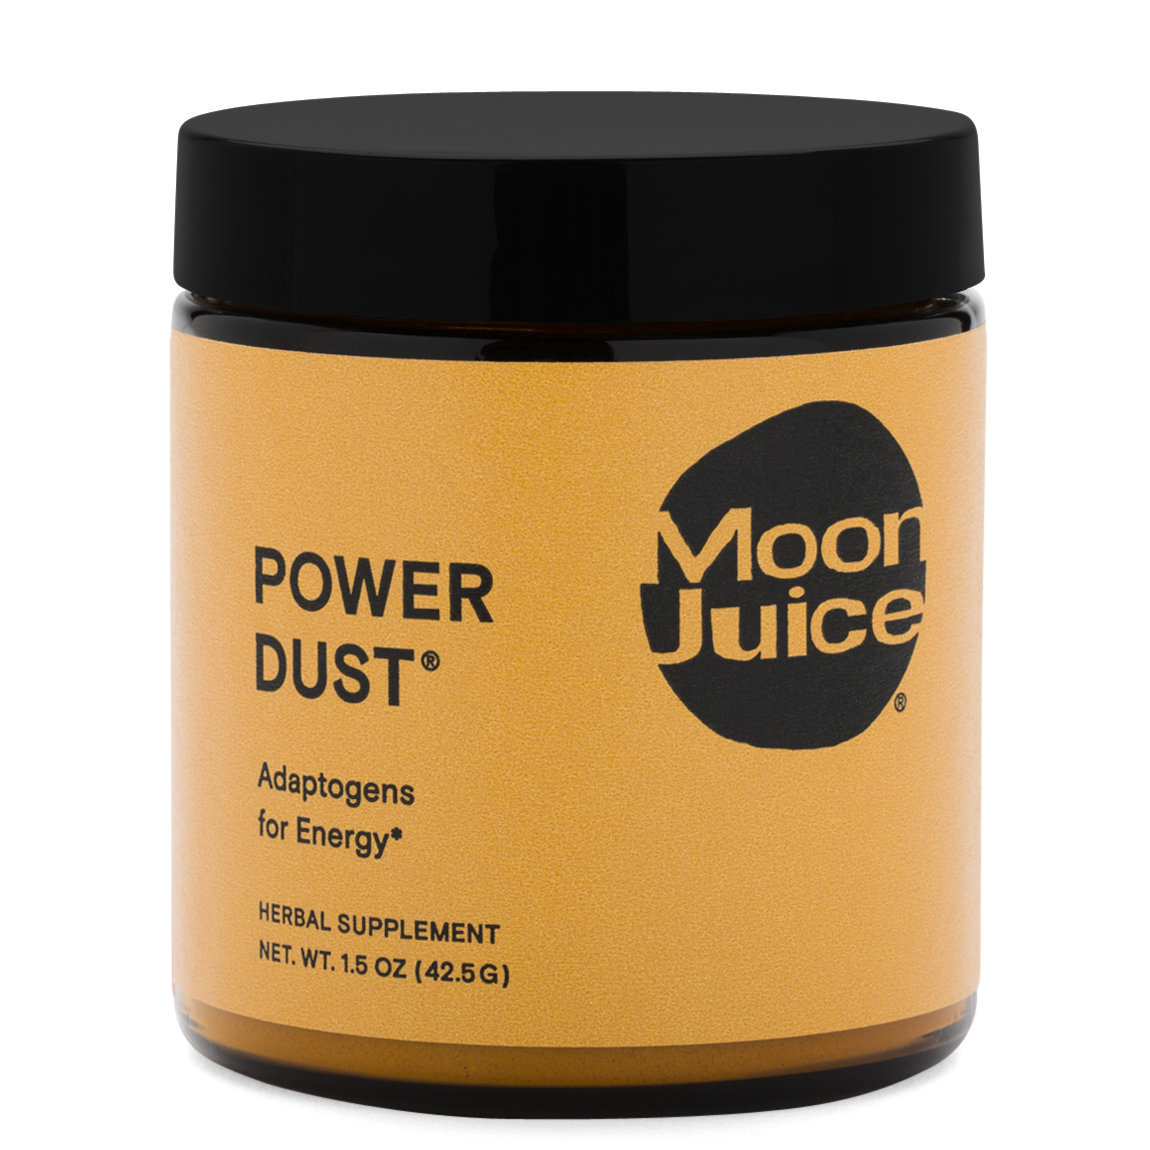 Moon Juice Power Dust product swatch.